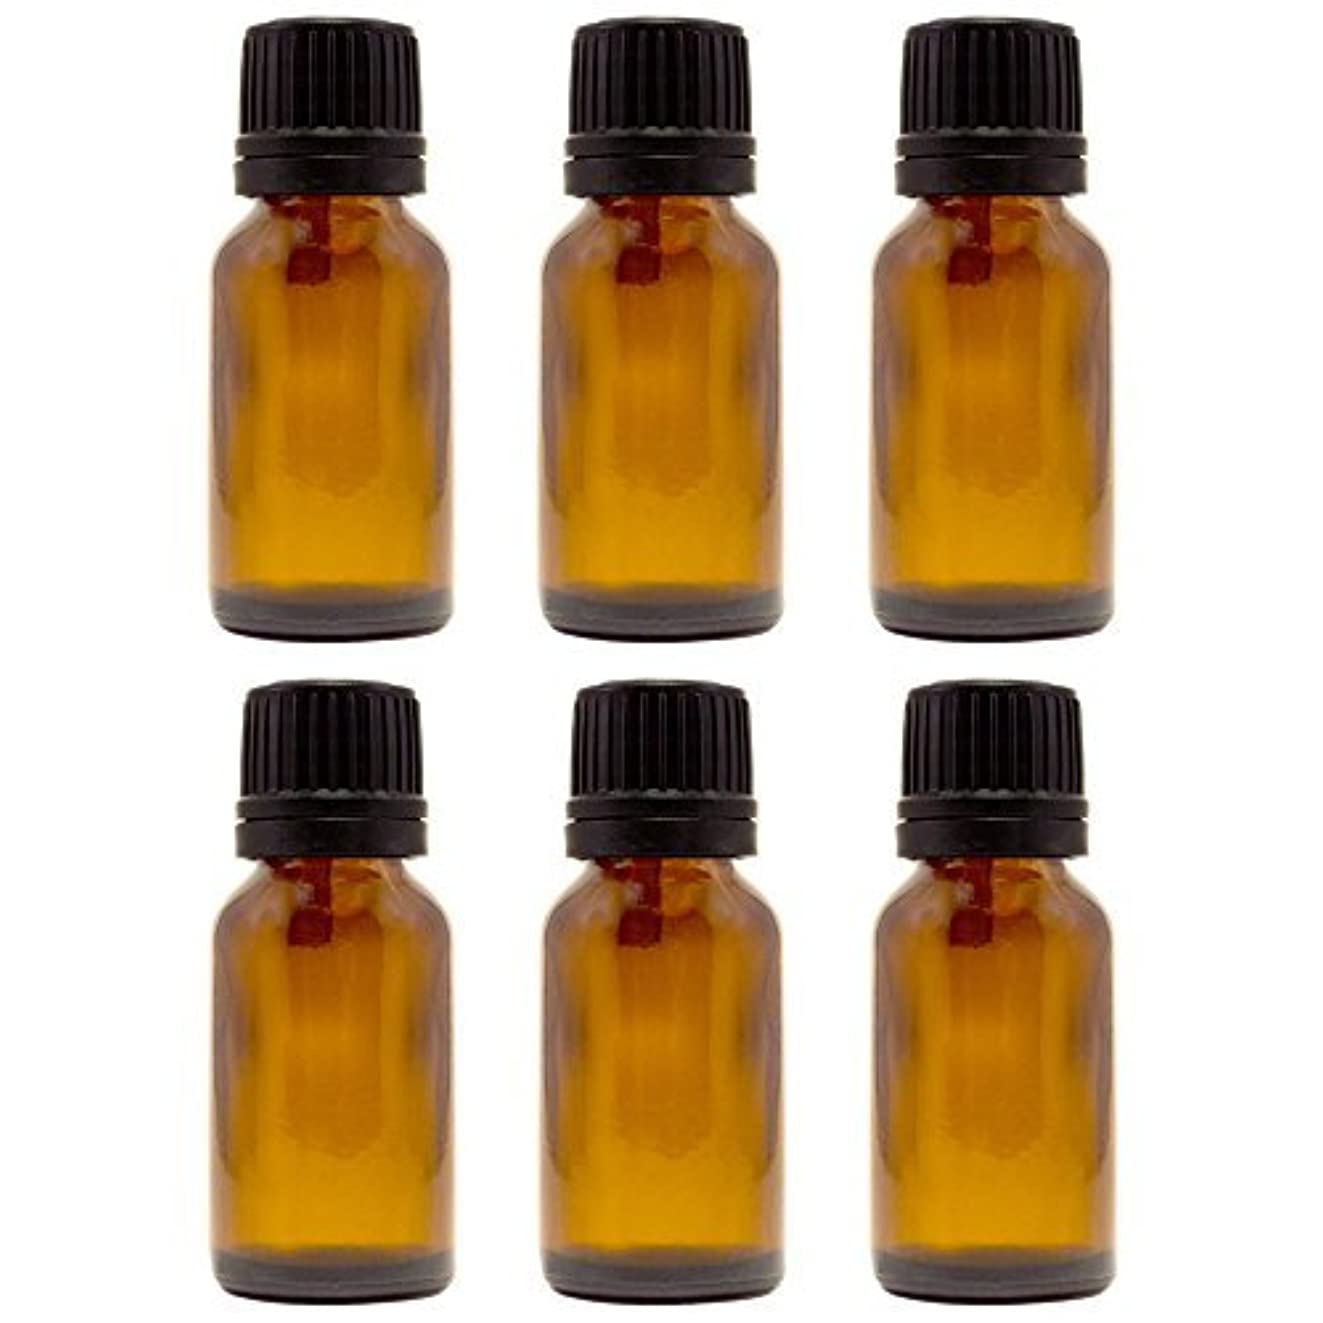 15 ml (1/2 fl oz) Amber Glass Bottle with Euro Dropper (6 Pack) [並行輸入品]